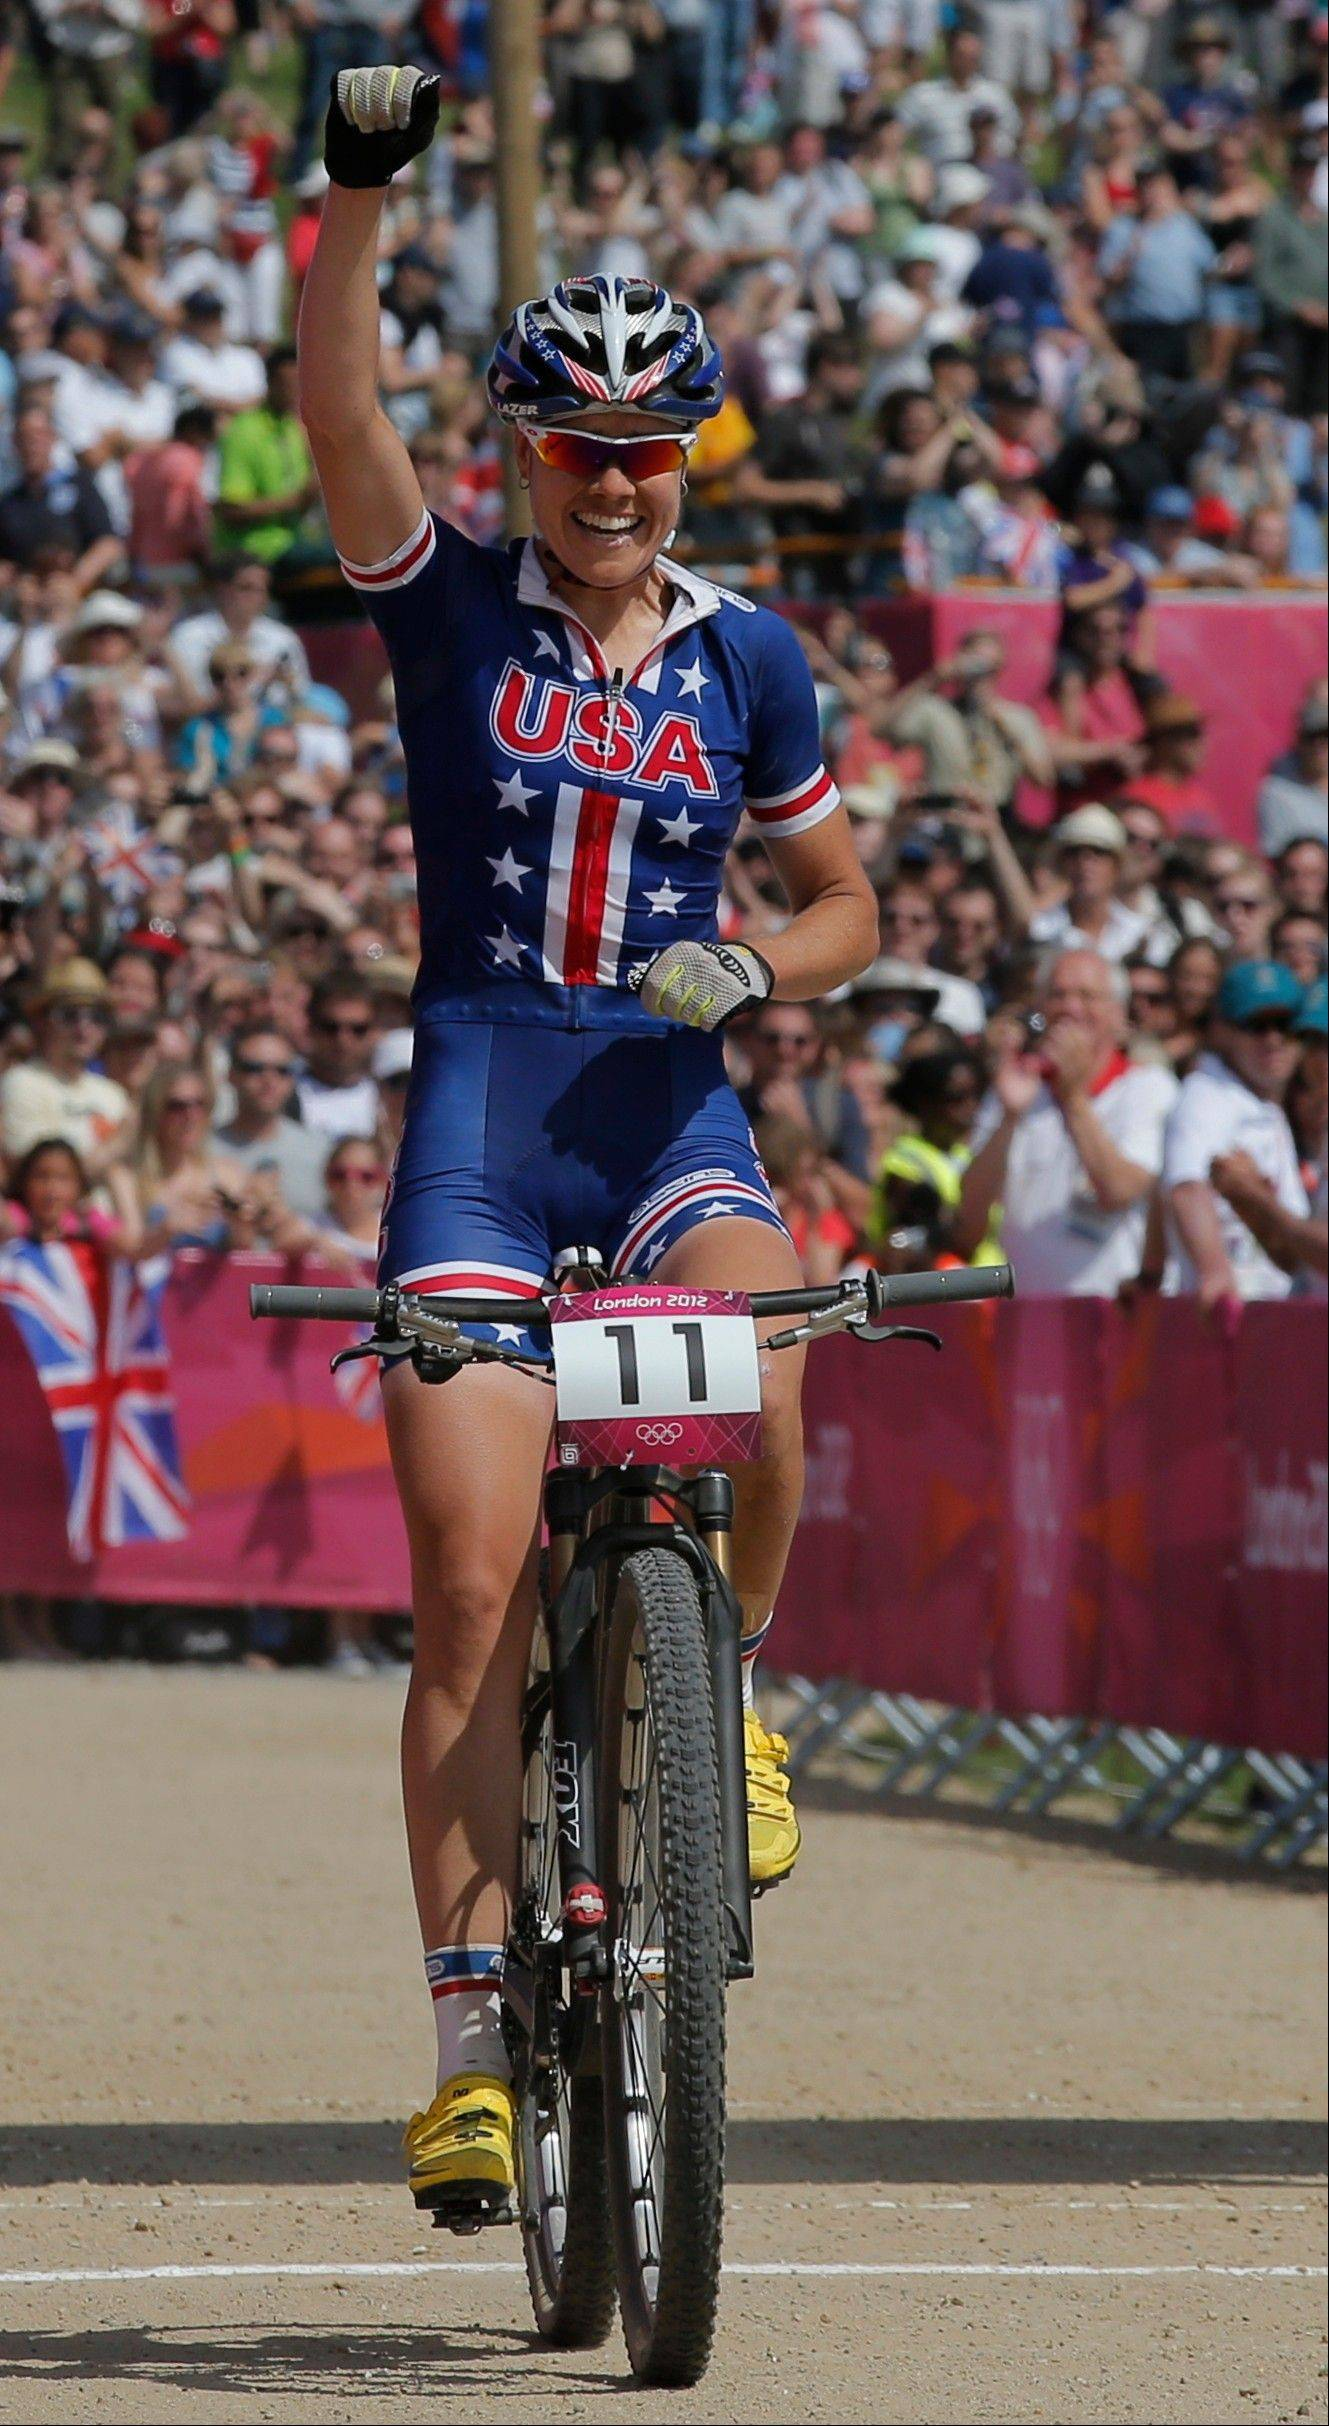 United States' Georgia Gould (11) crosses the finish line to win the bronze medal in the Mountain Bike Cycling women's race, at the 2012 Summer Olympics, Saturday, Aug. 11, 2012, at Hadleigh Farm, in Essex, England.